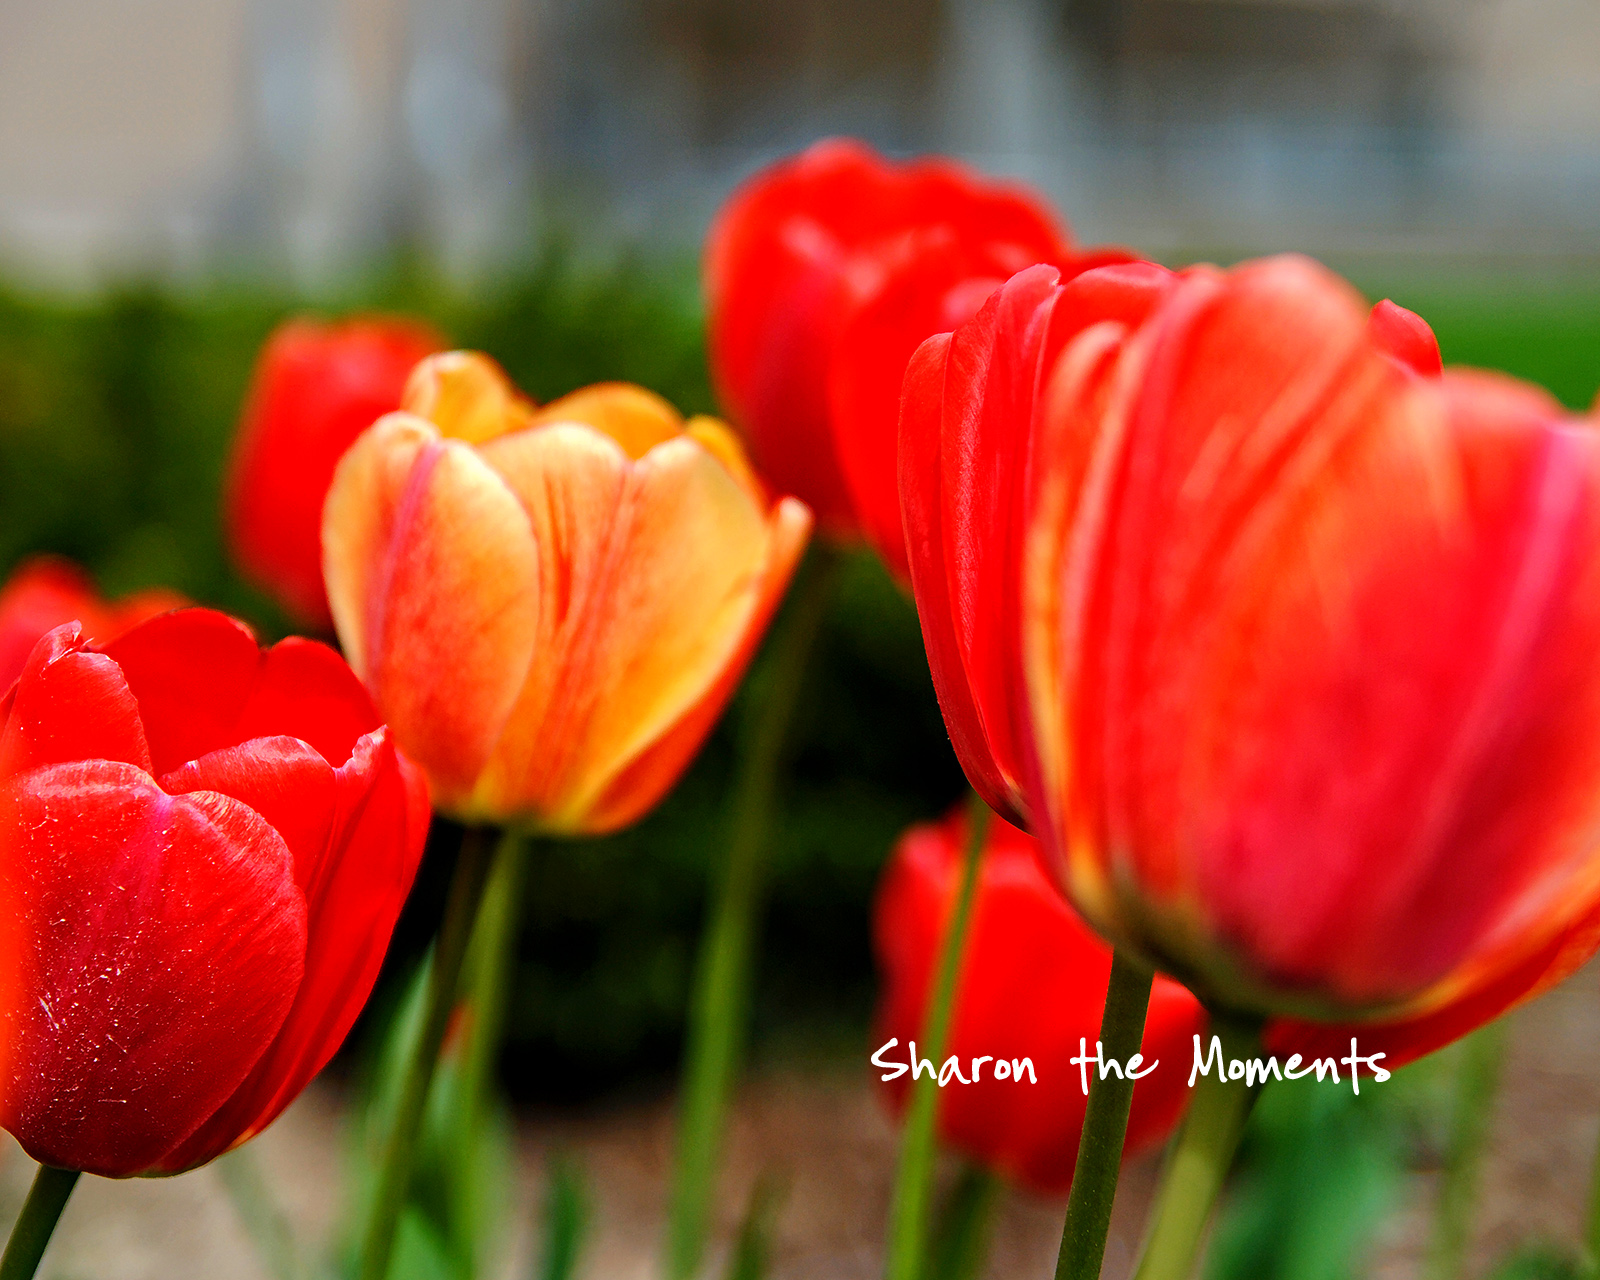 Monday Monday Spring Tulips Downtown Columbus Ohio|Sharon the Moments blog